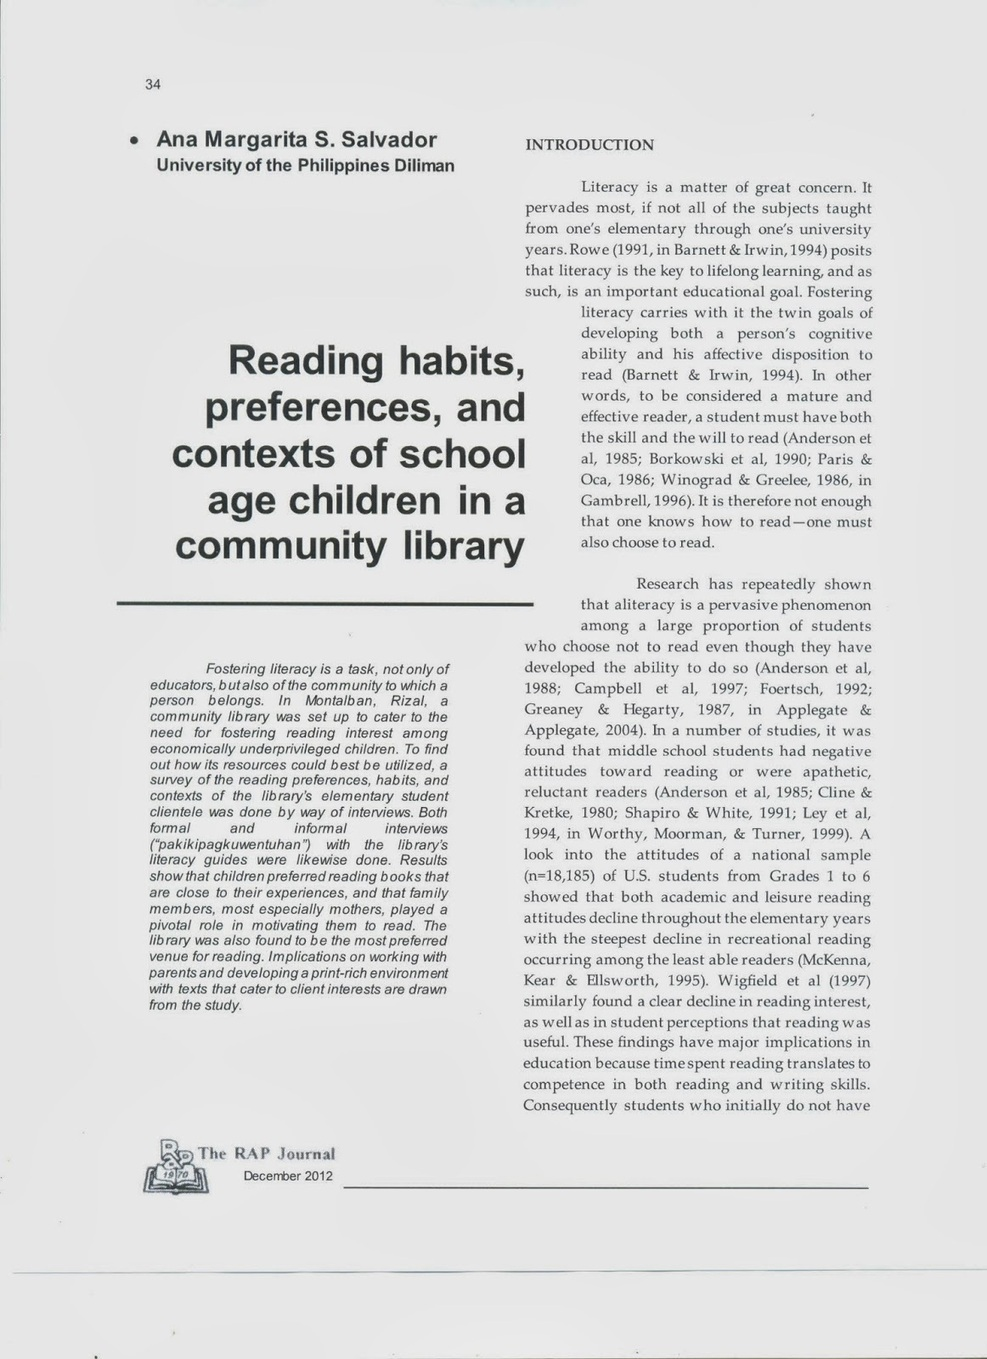 decline in reading skills among students